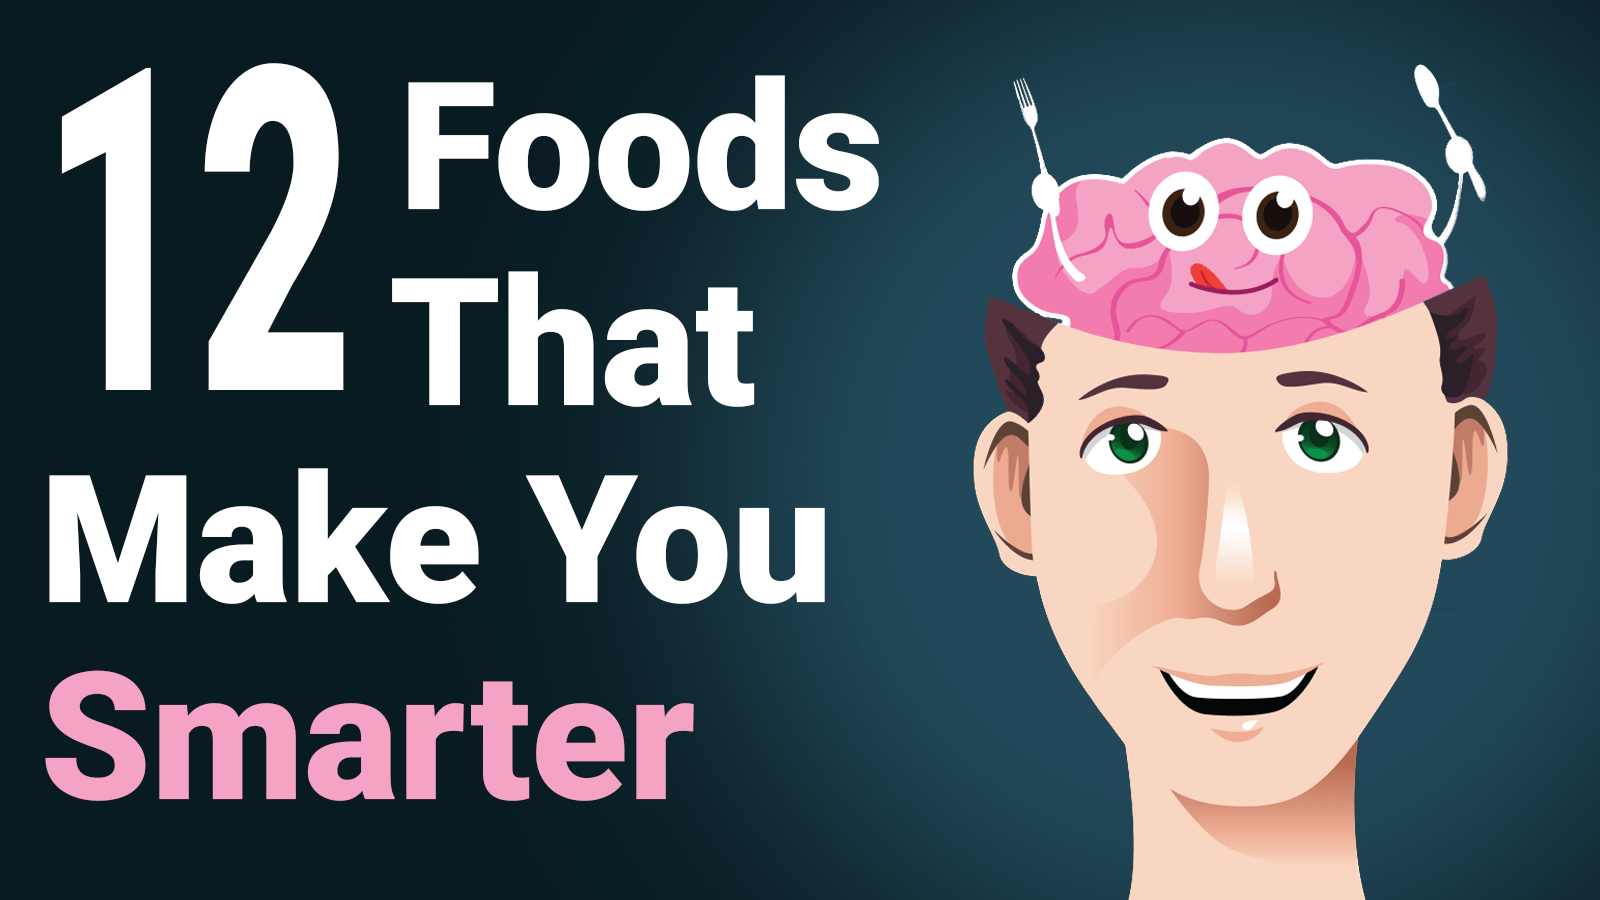 foods that make you smarter